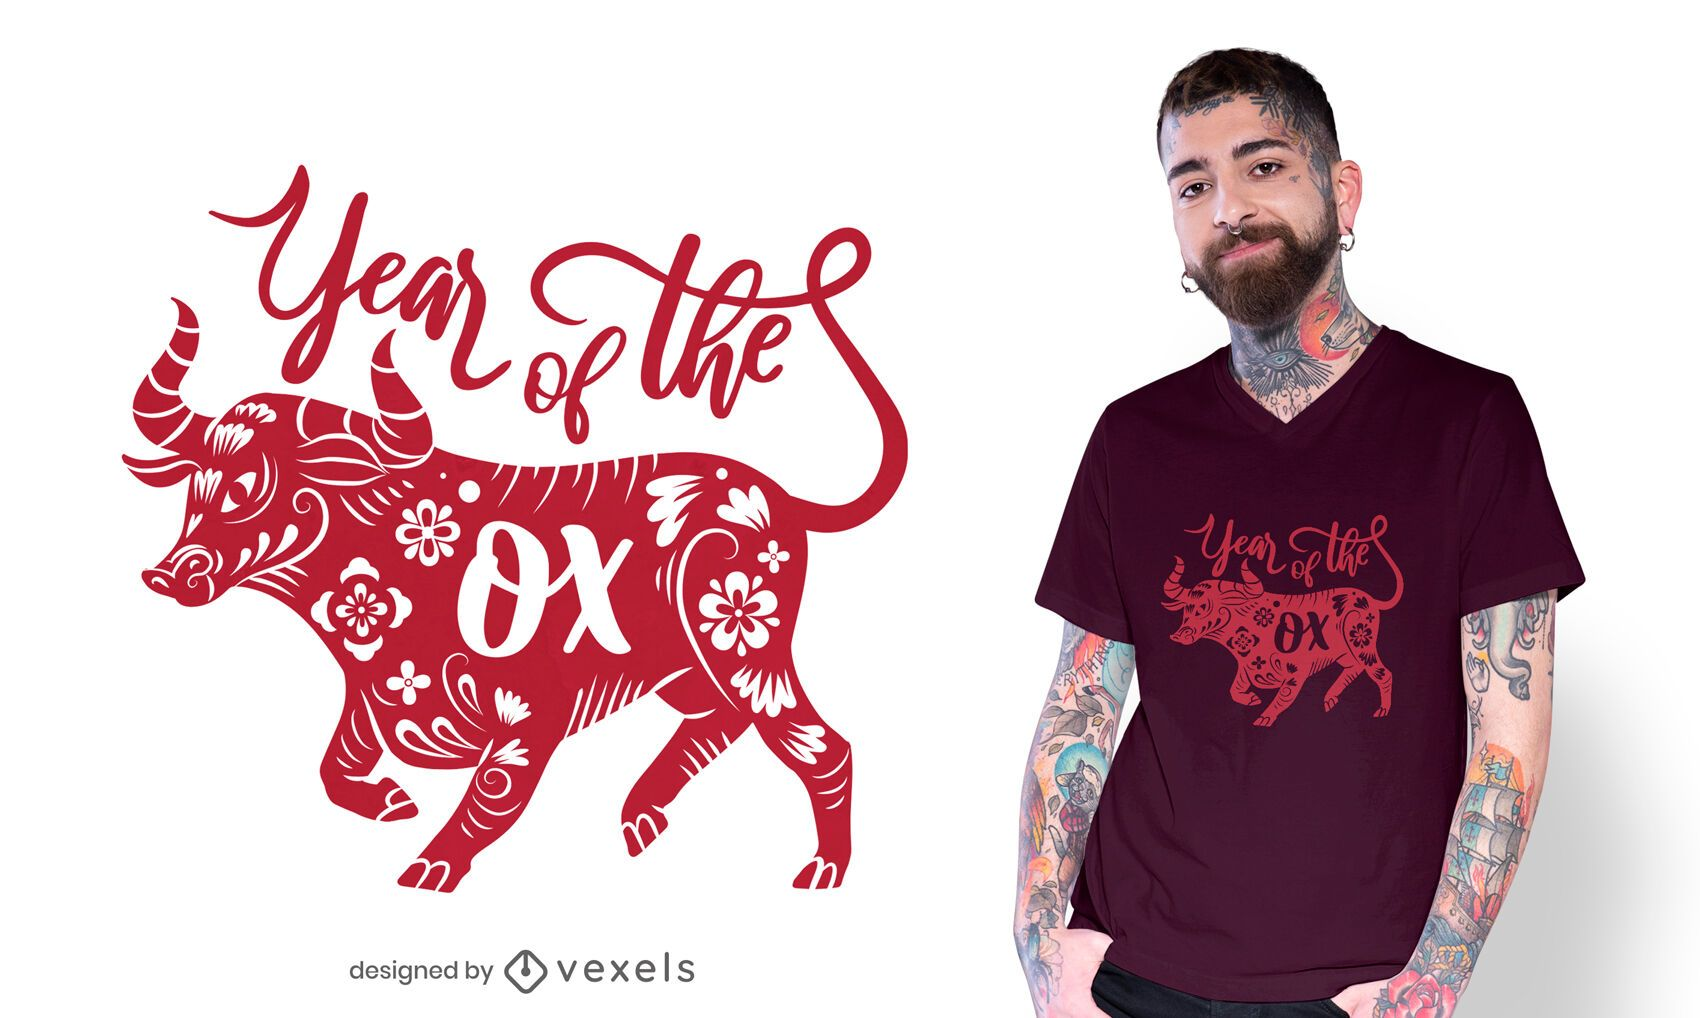 Year of the ox t-shirt design